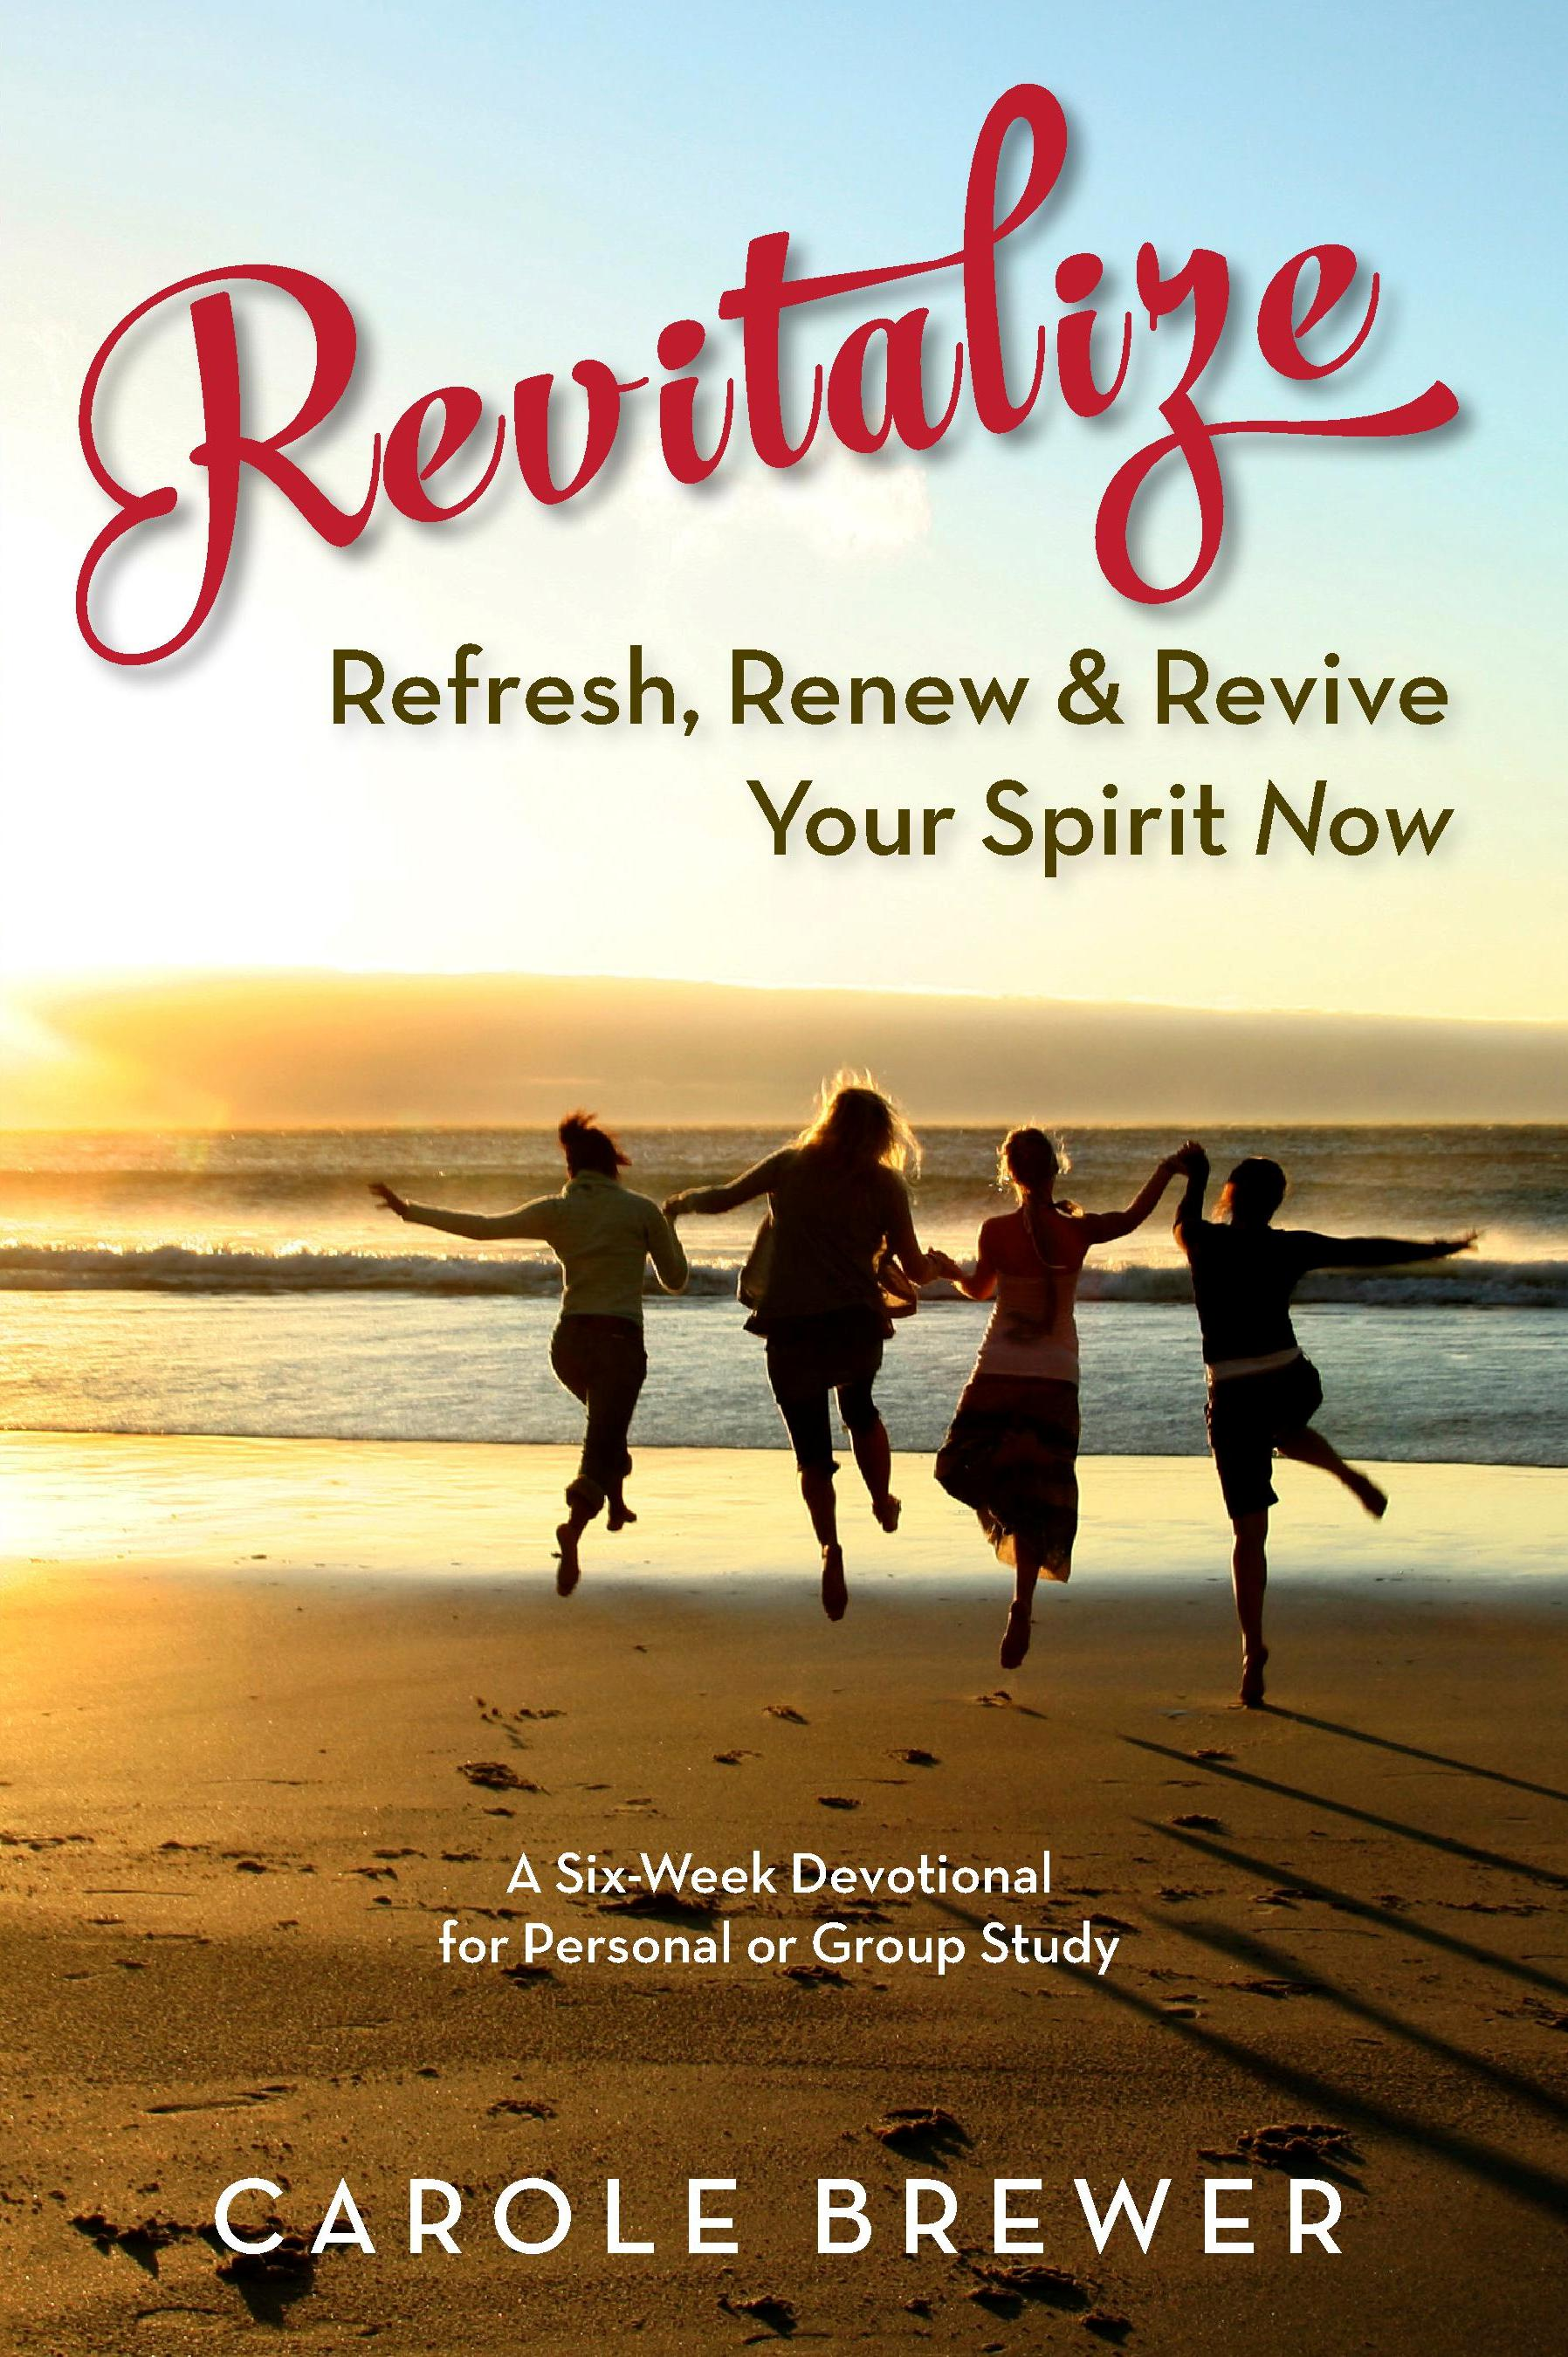 Six-Week Devotional for Personal or Group Study